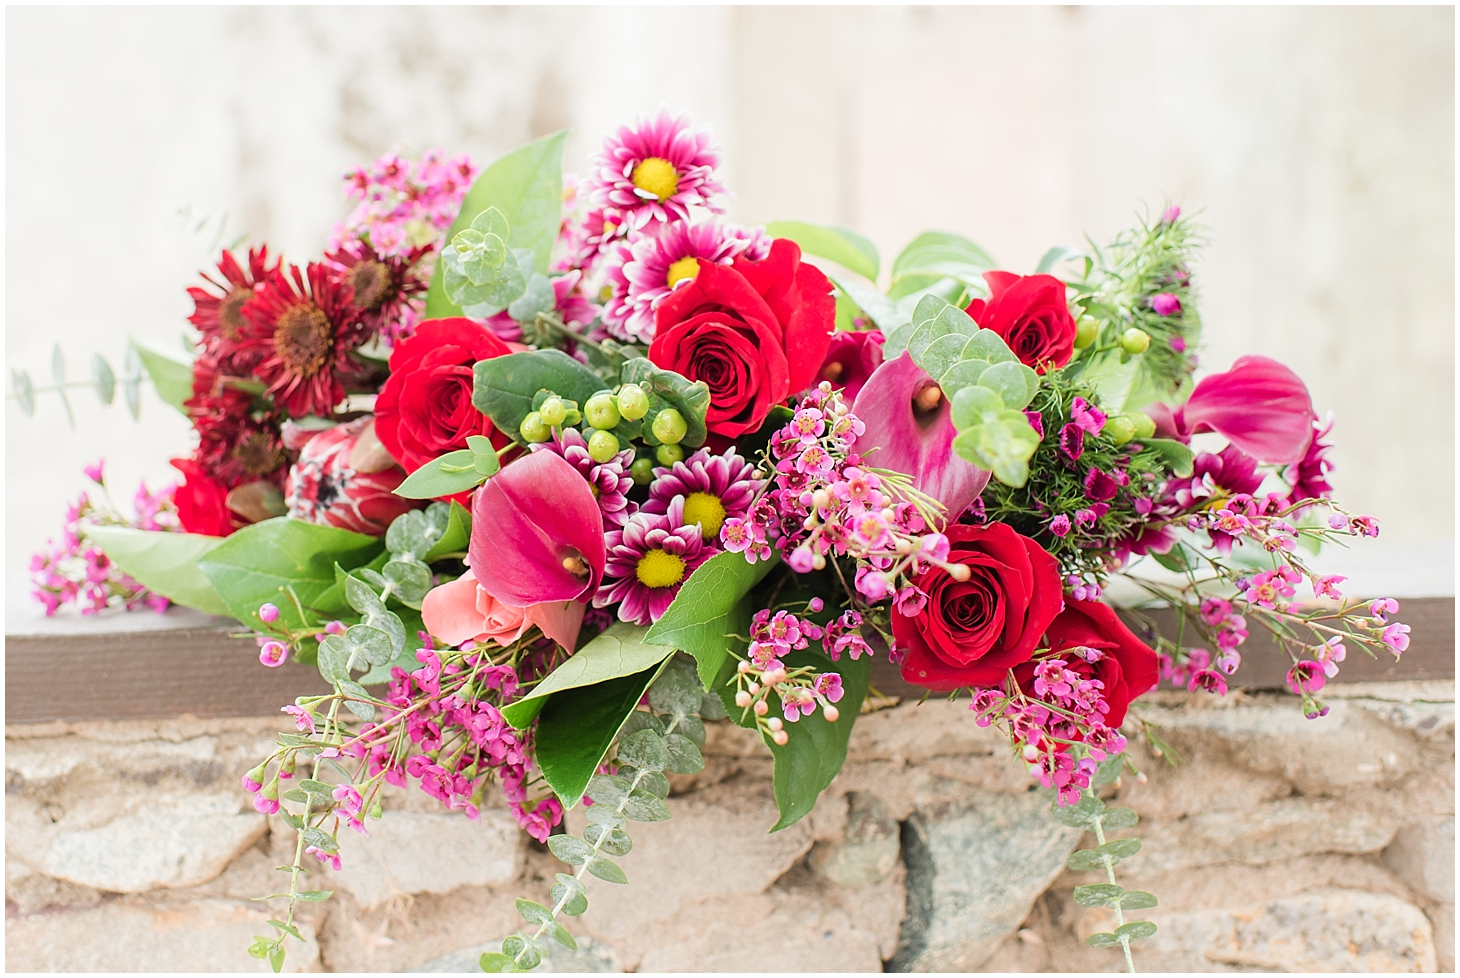 Wedding bouquet created by Jade Min Photography for an anniversary styled session at photographed at Scorpion Gulch in Phoenix! Photos taken by Phoenix wedding photographer, Jade Min Photography.